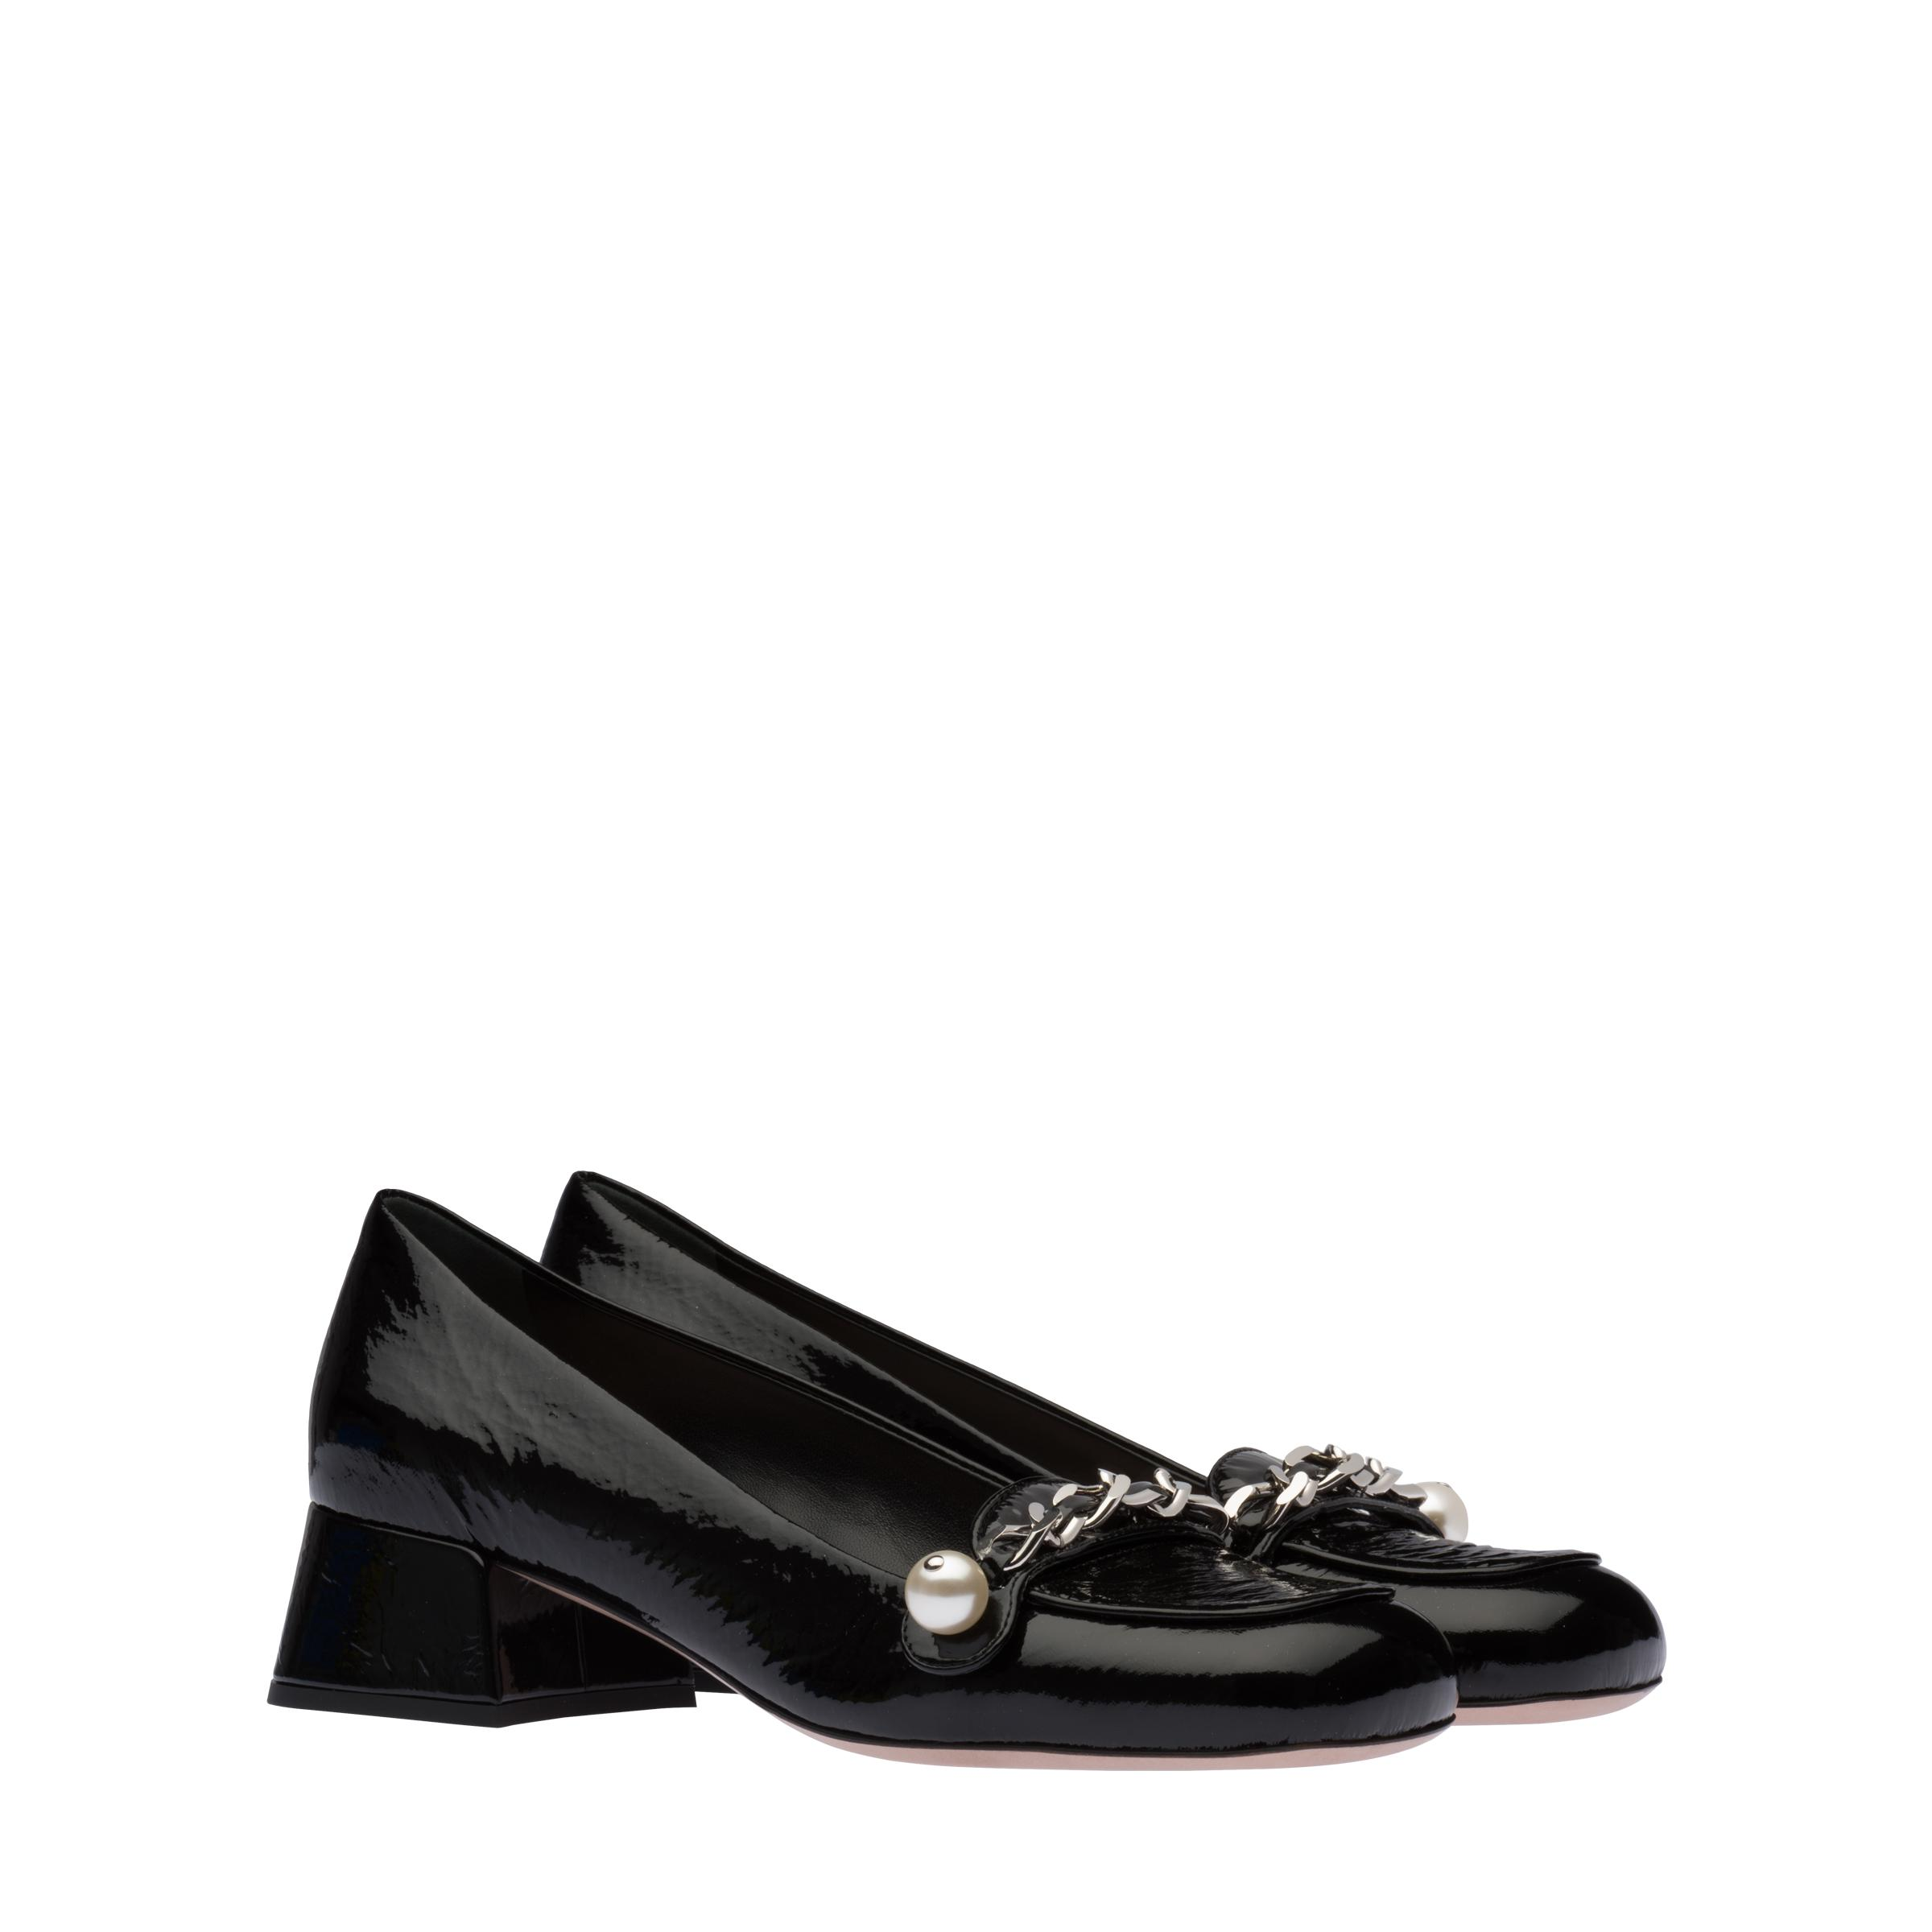 Patent Leather Loafers Women Black